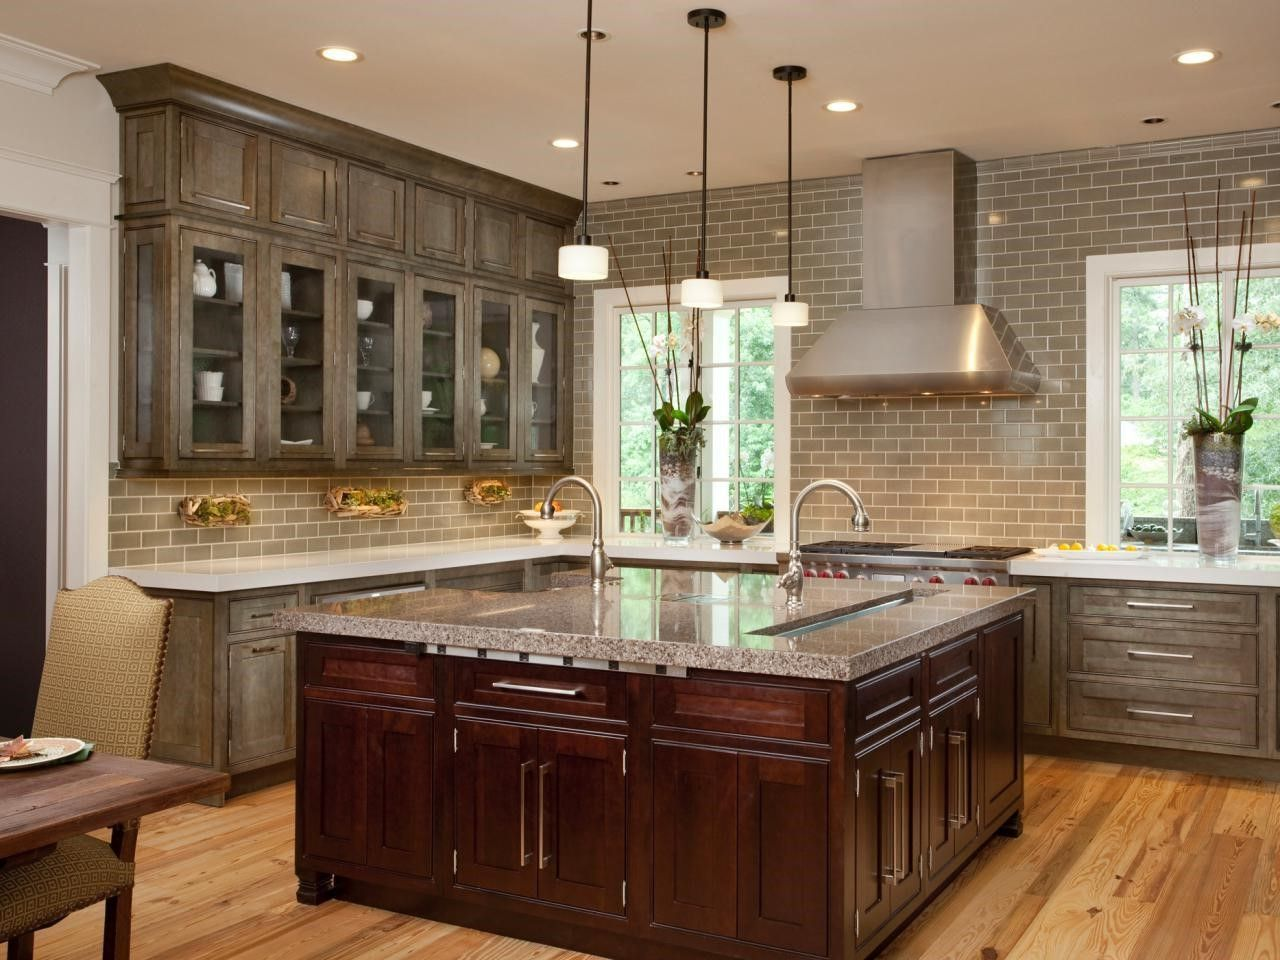 gray distressed kitchen cabinets distressed kitchen cabinets interior design kitchen kitchen on kitchen ideas cabinets id=98431